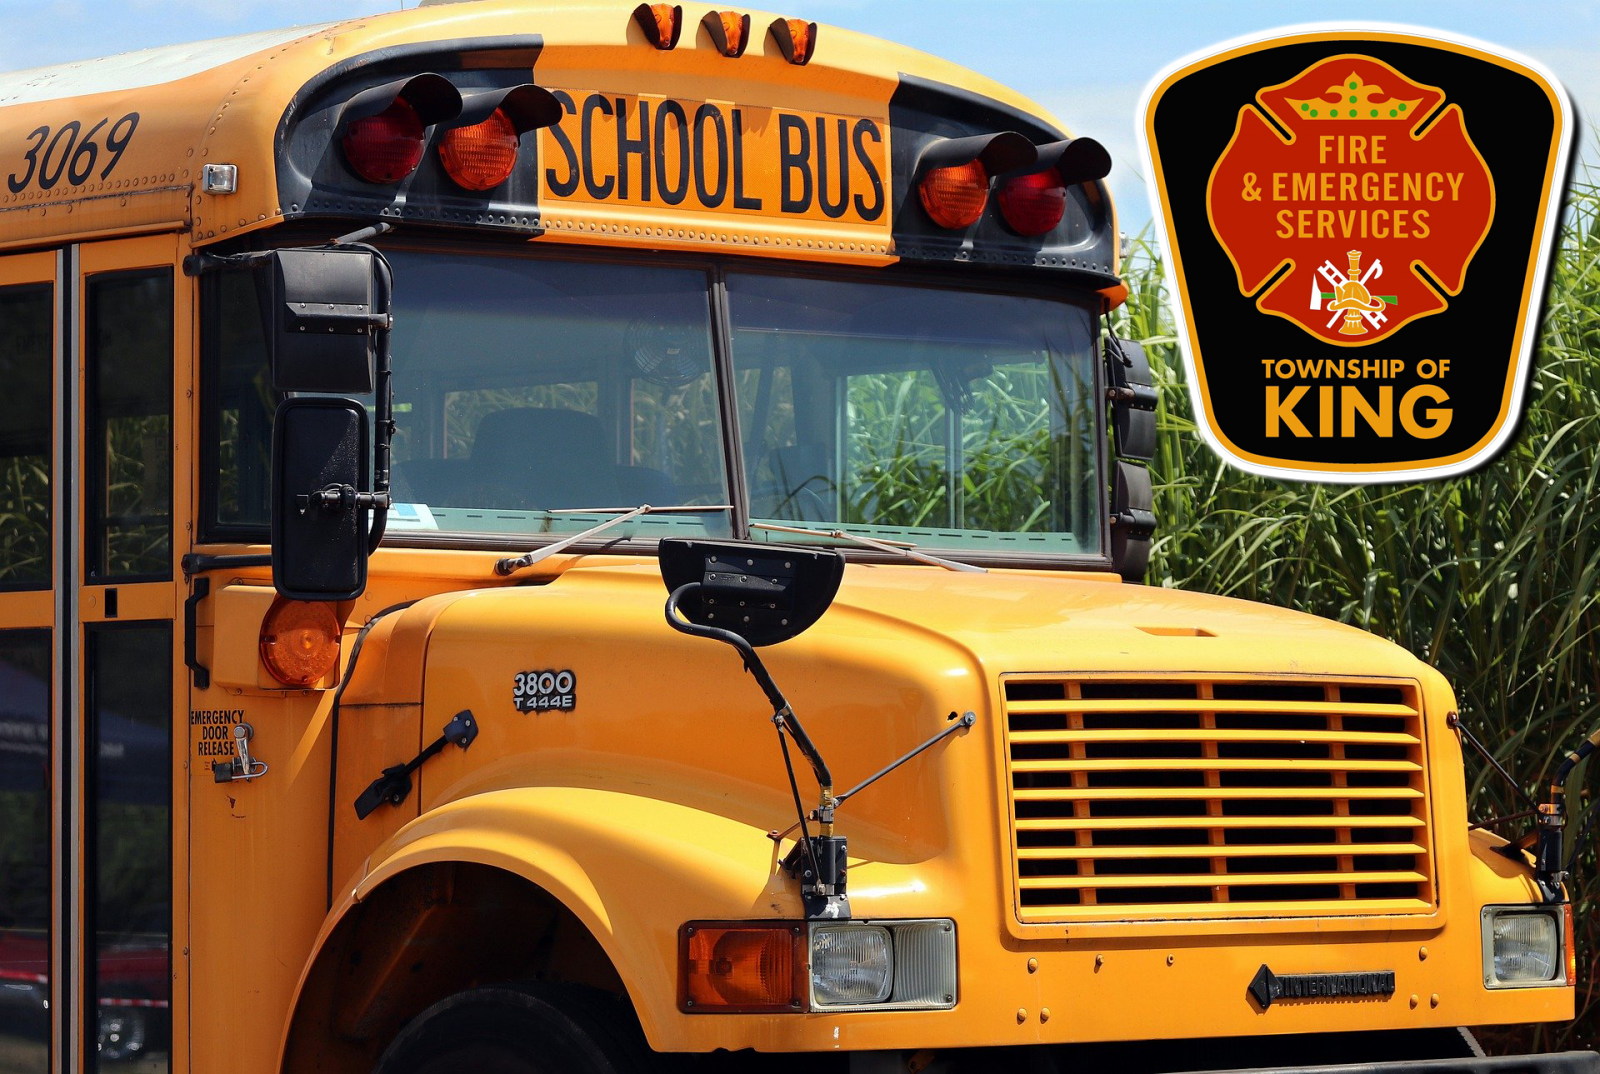 Picture of school bus and King Fire logo